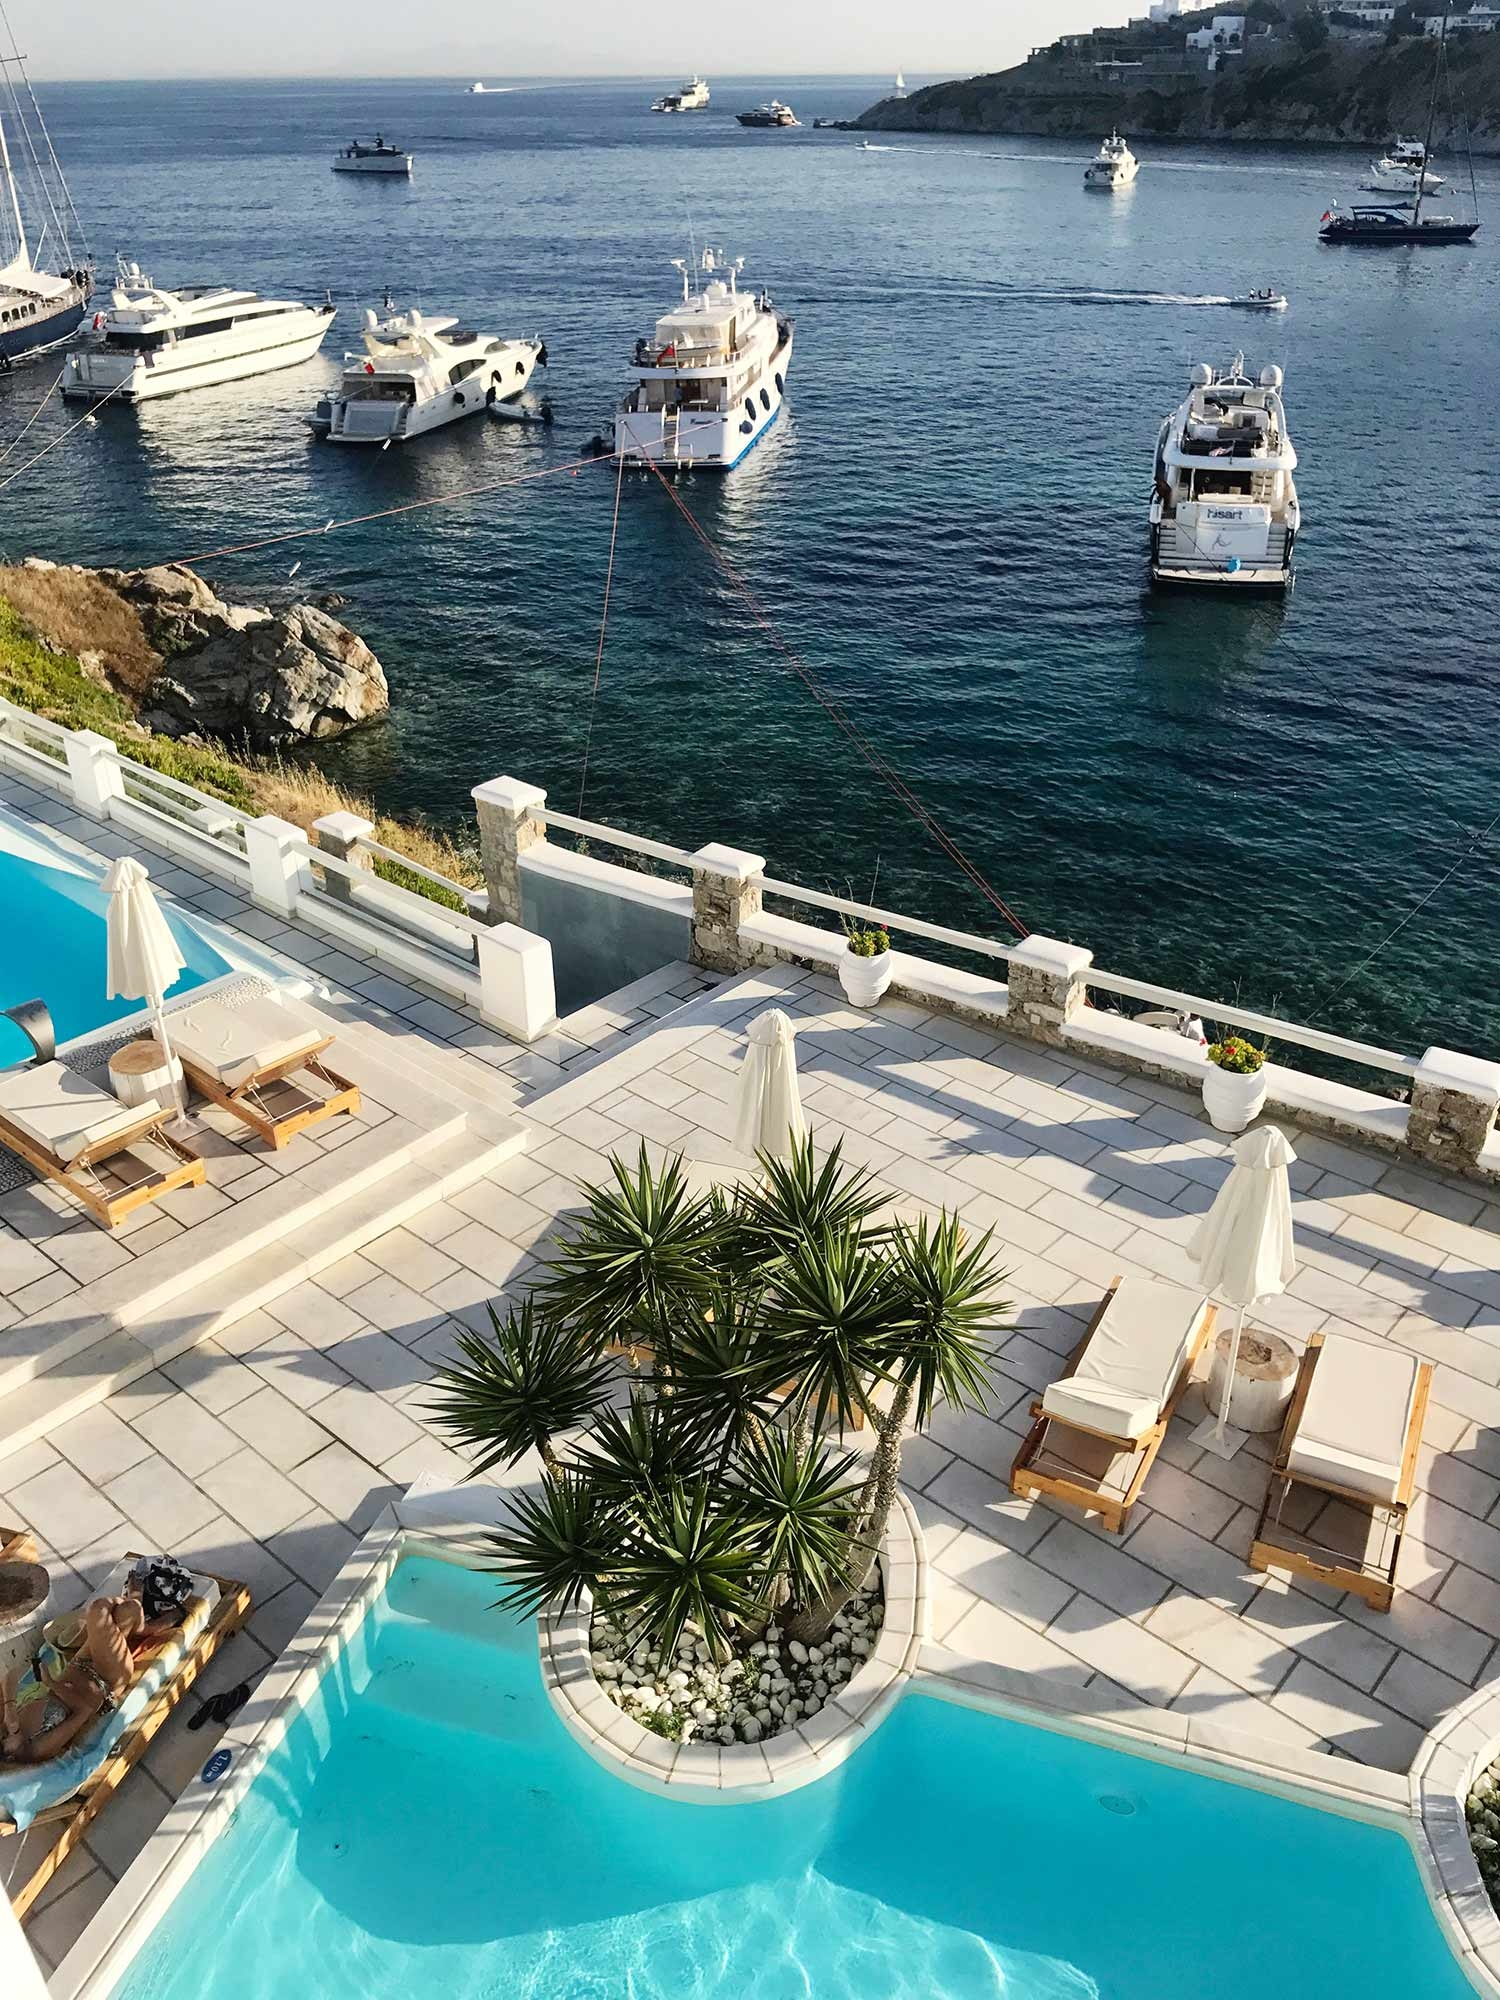 Seaside pools overlooking anchored boats and blue water. July 2017